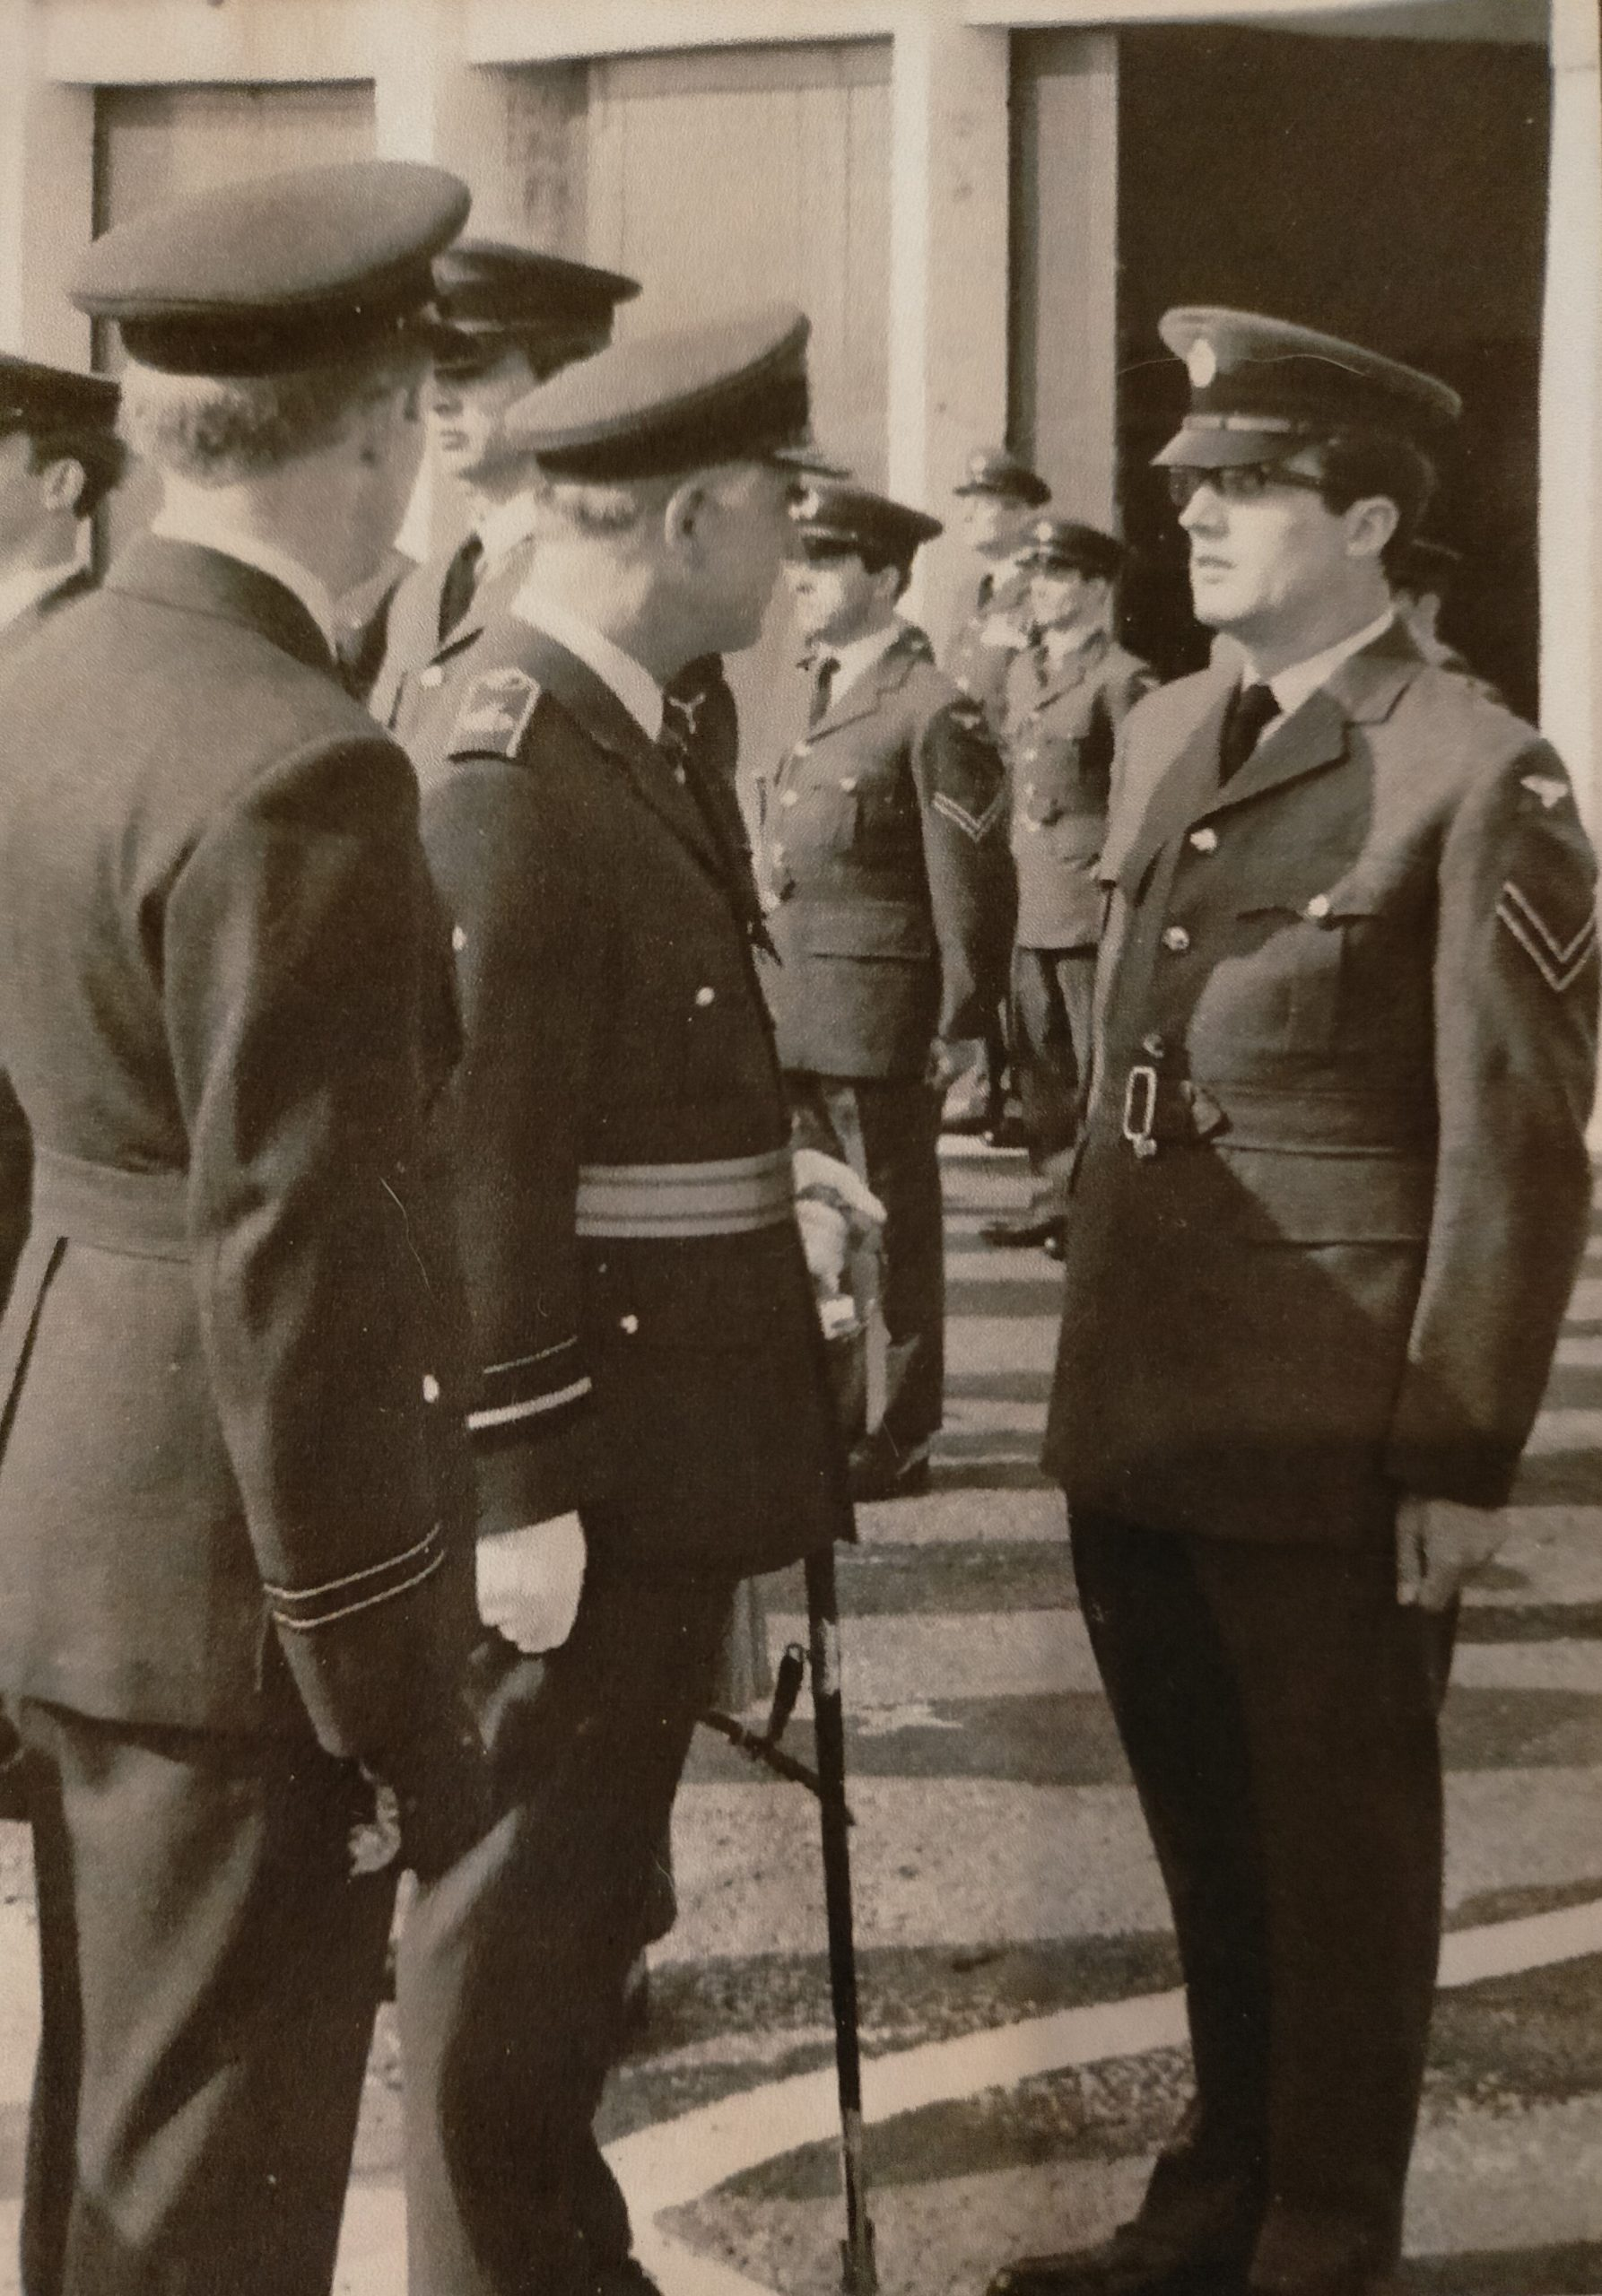 Corporal John Evans and several other men standing in uniform during an inspection.